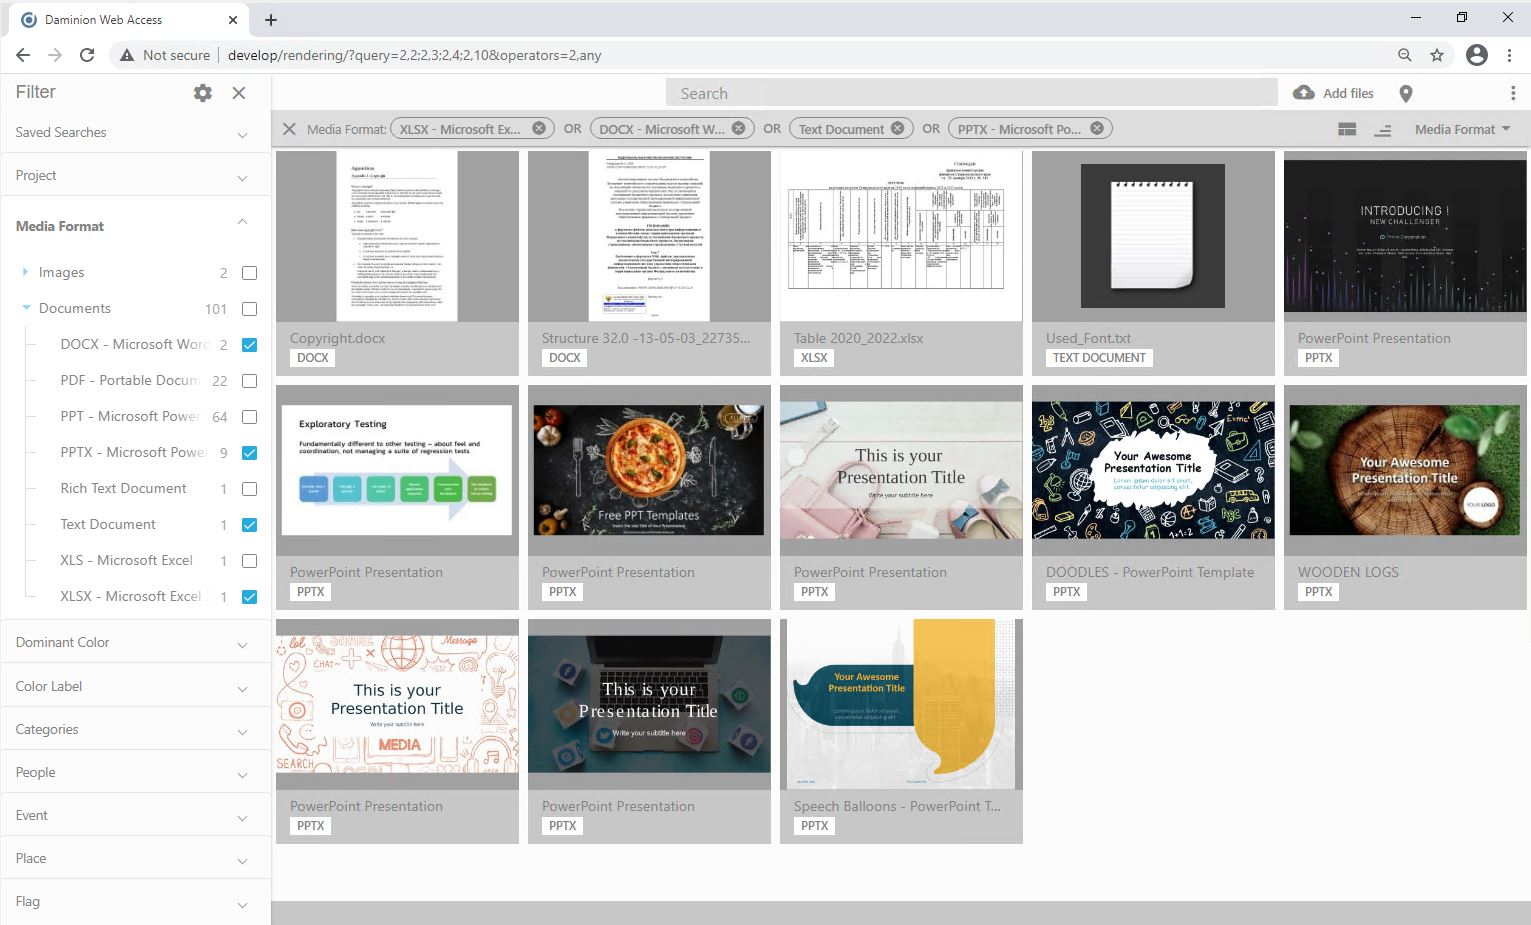 Daminion DAM displays visual previews for PDF and office documents (PPTX, DOCX)